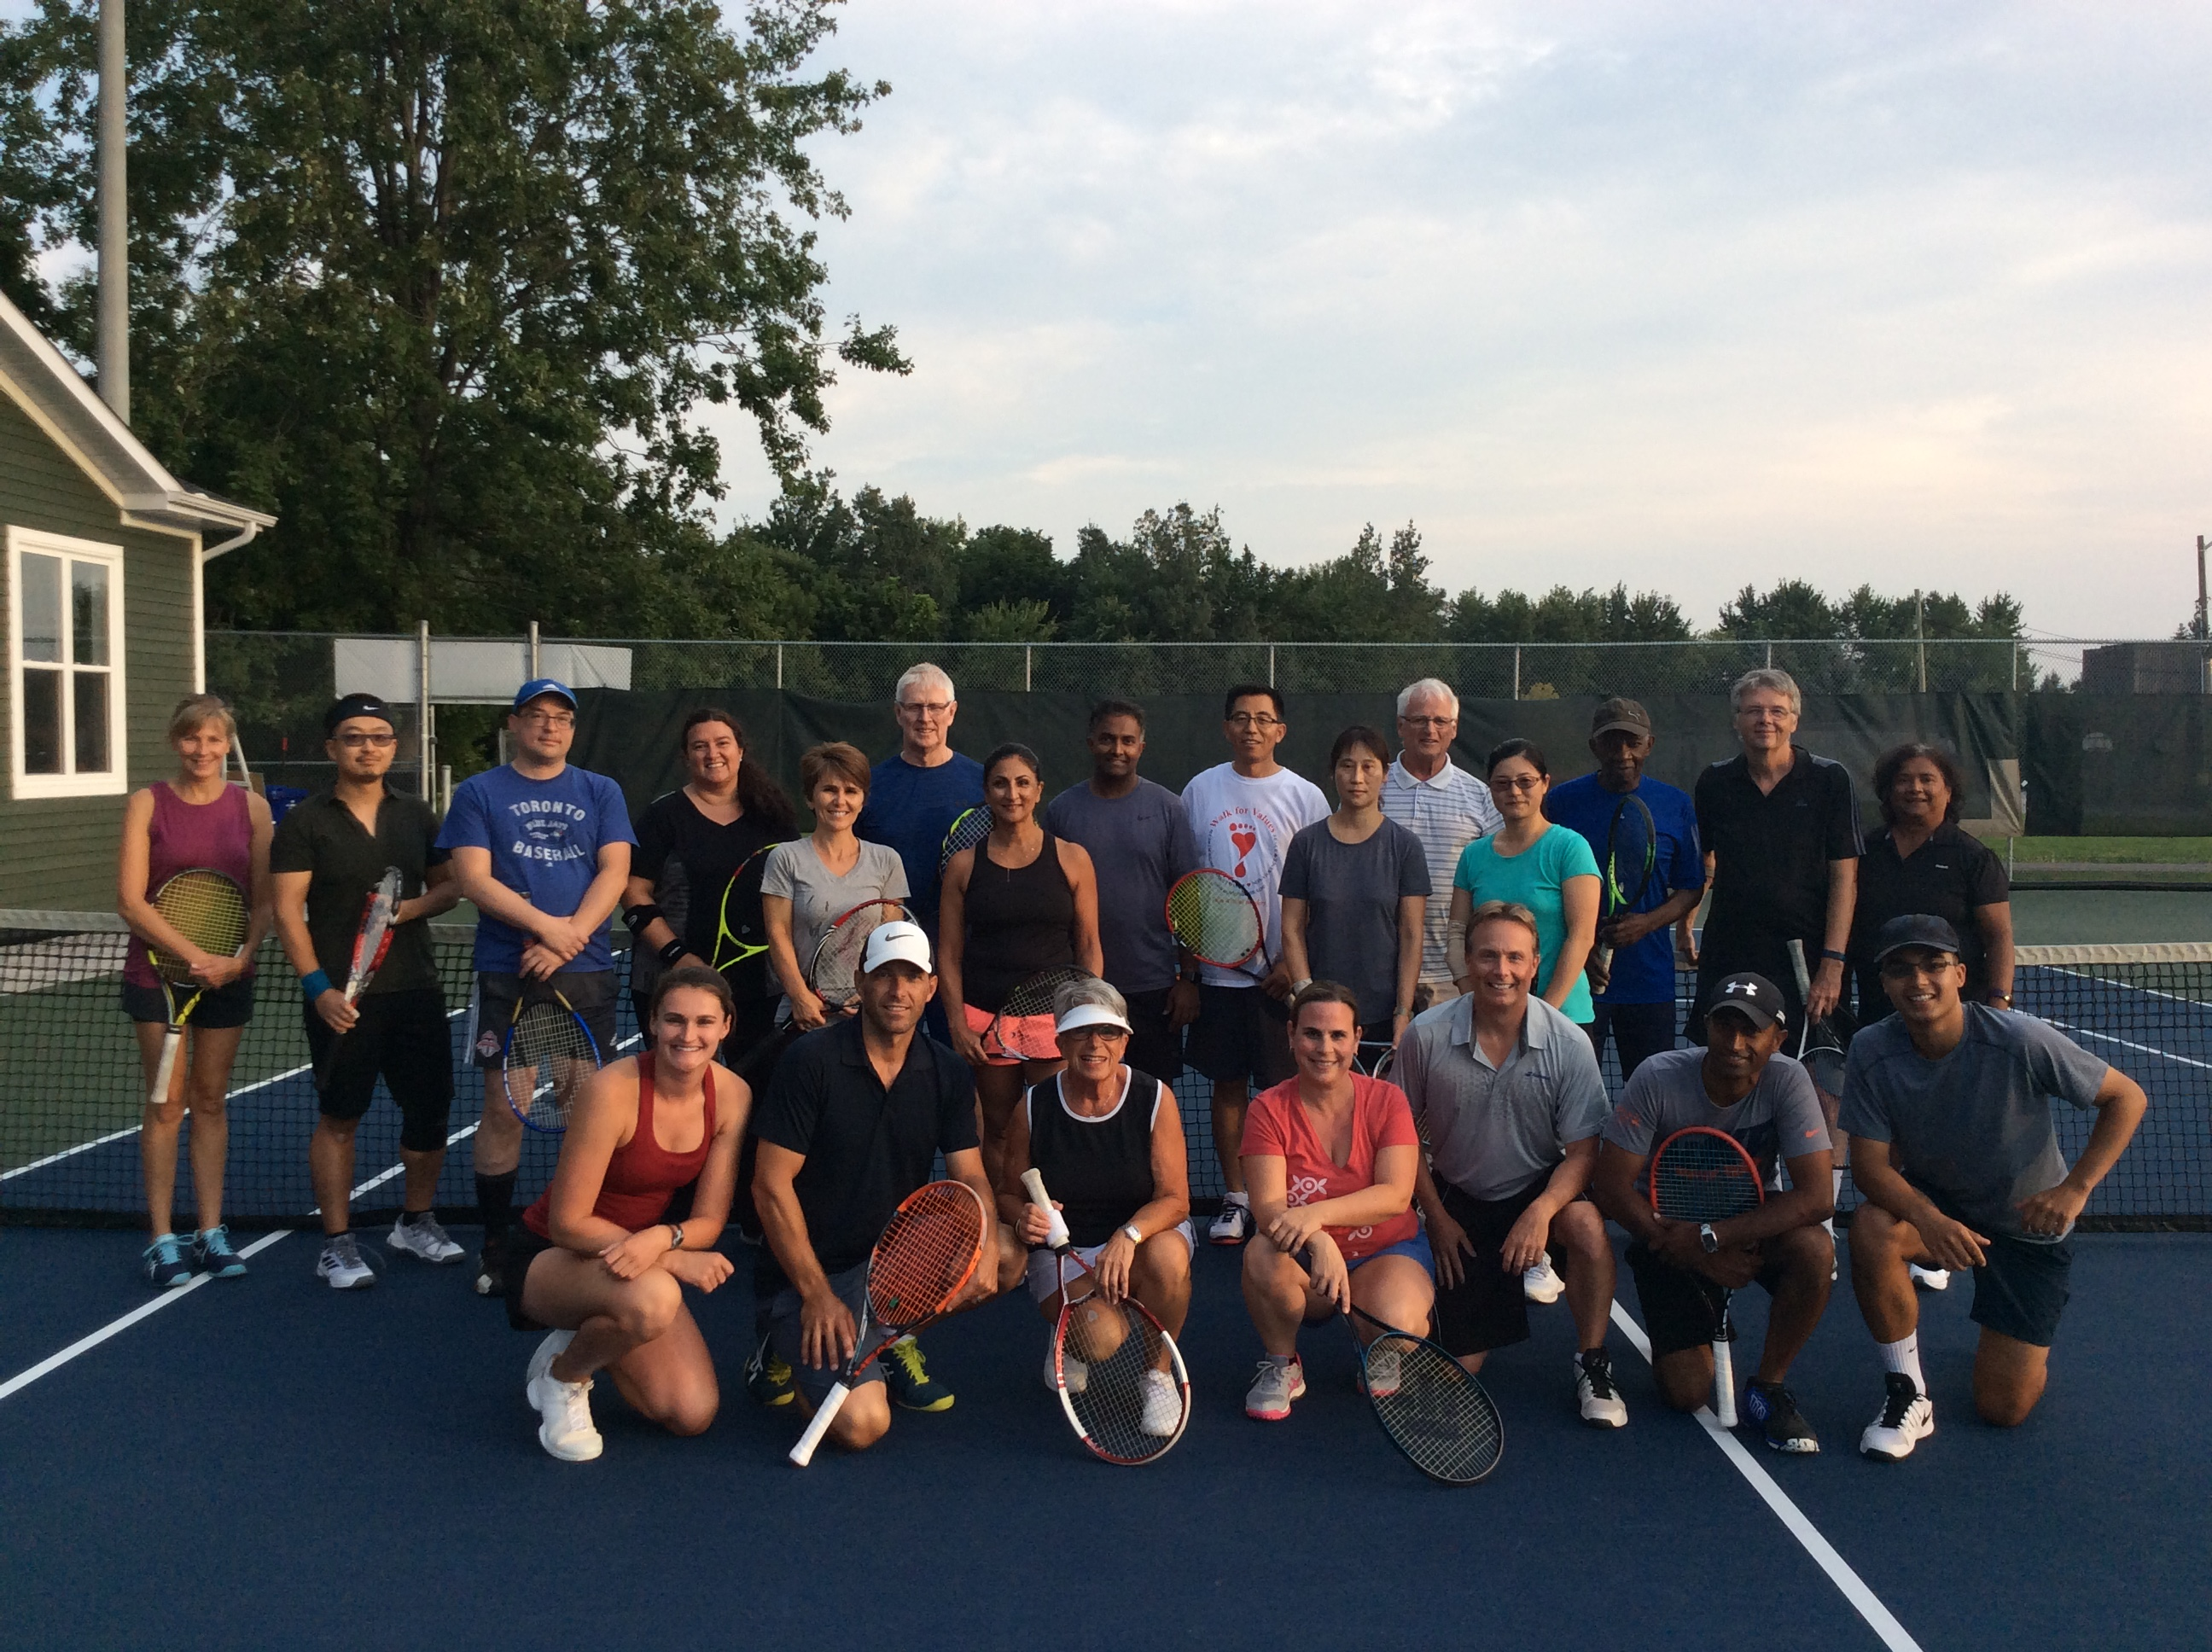 18 Strong at Cardio Tennis!